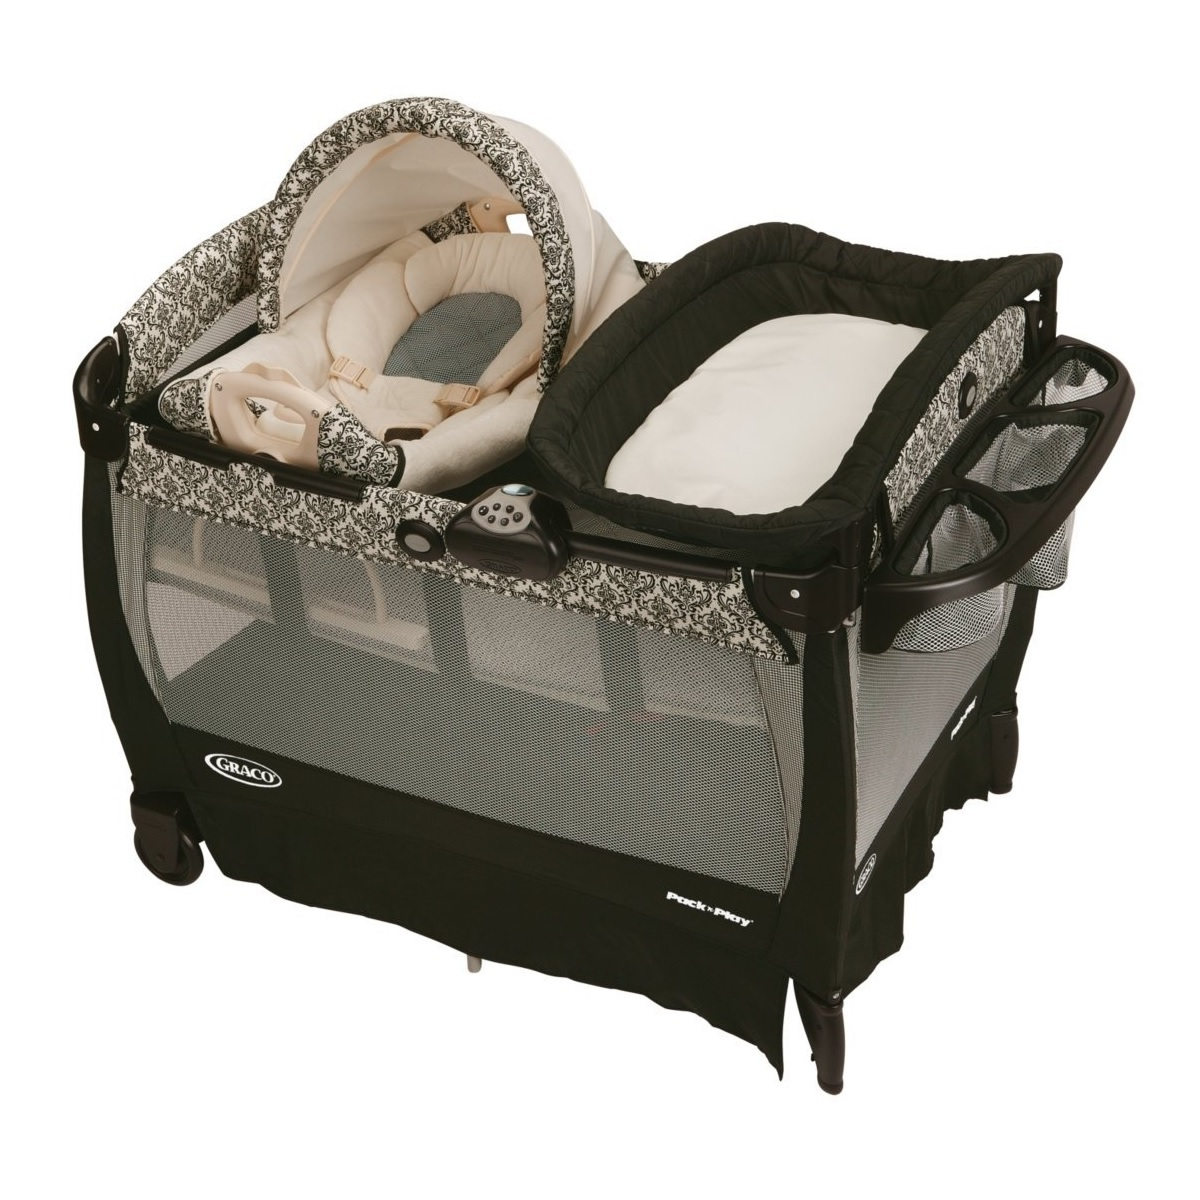 pack n play playard changer napper portable playpen baby graco rocking seat new